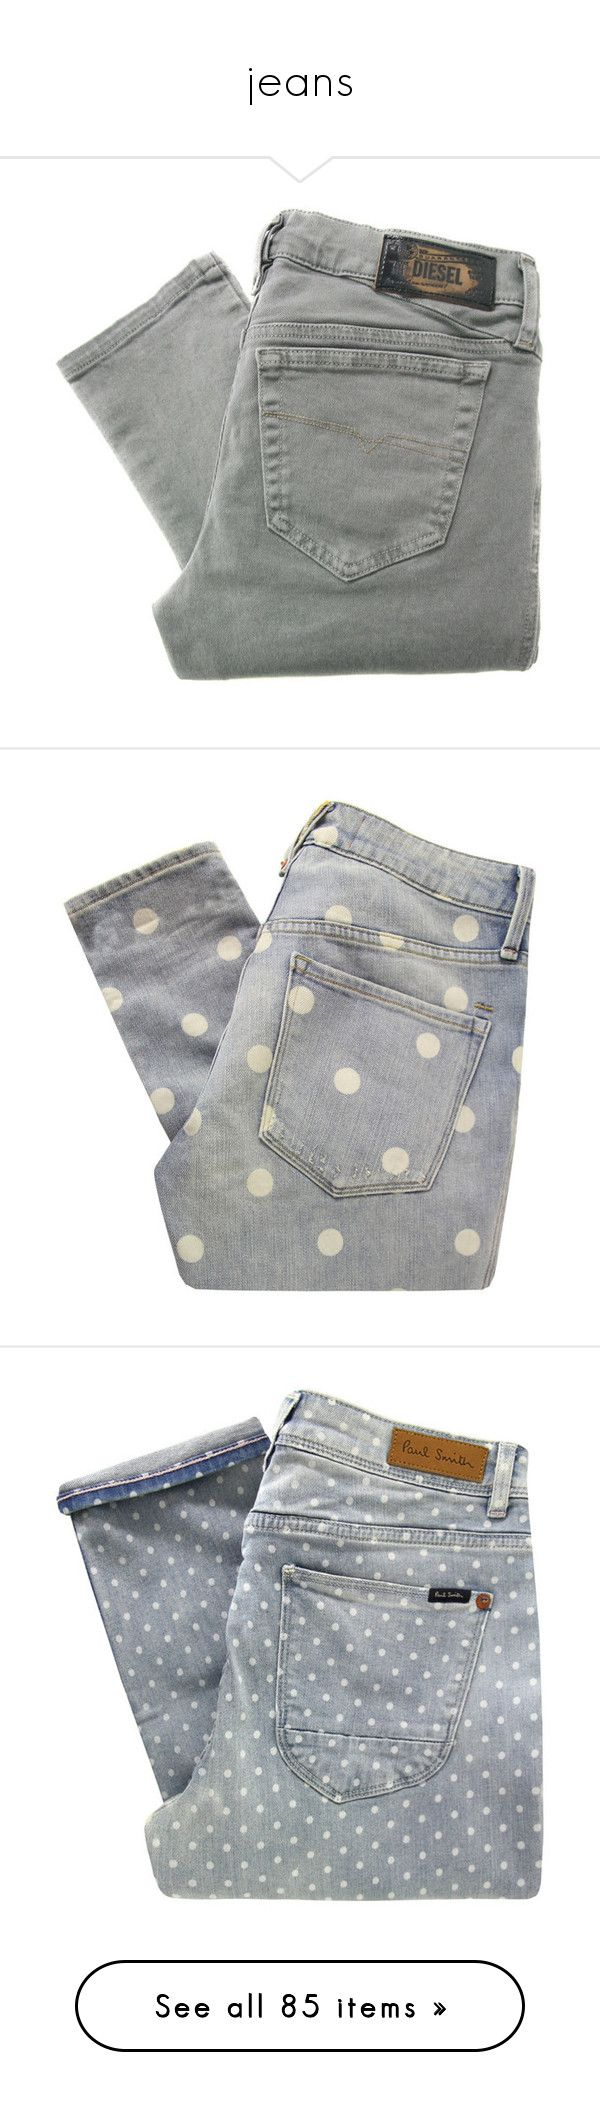 """""""jeans"""" by alenaganzhela on Polyvore featuring denim, jeans, pants, bottoms, trousers, leather skinny jeans, low rise jeans, diesel jeans, skinny fit jeans и stretchy skinny jeans"""